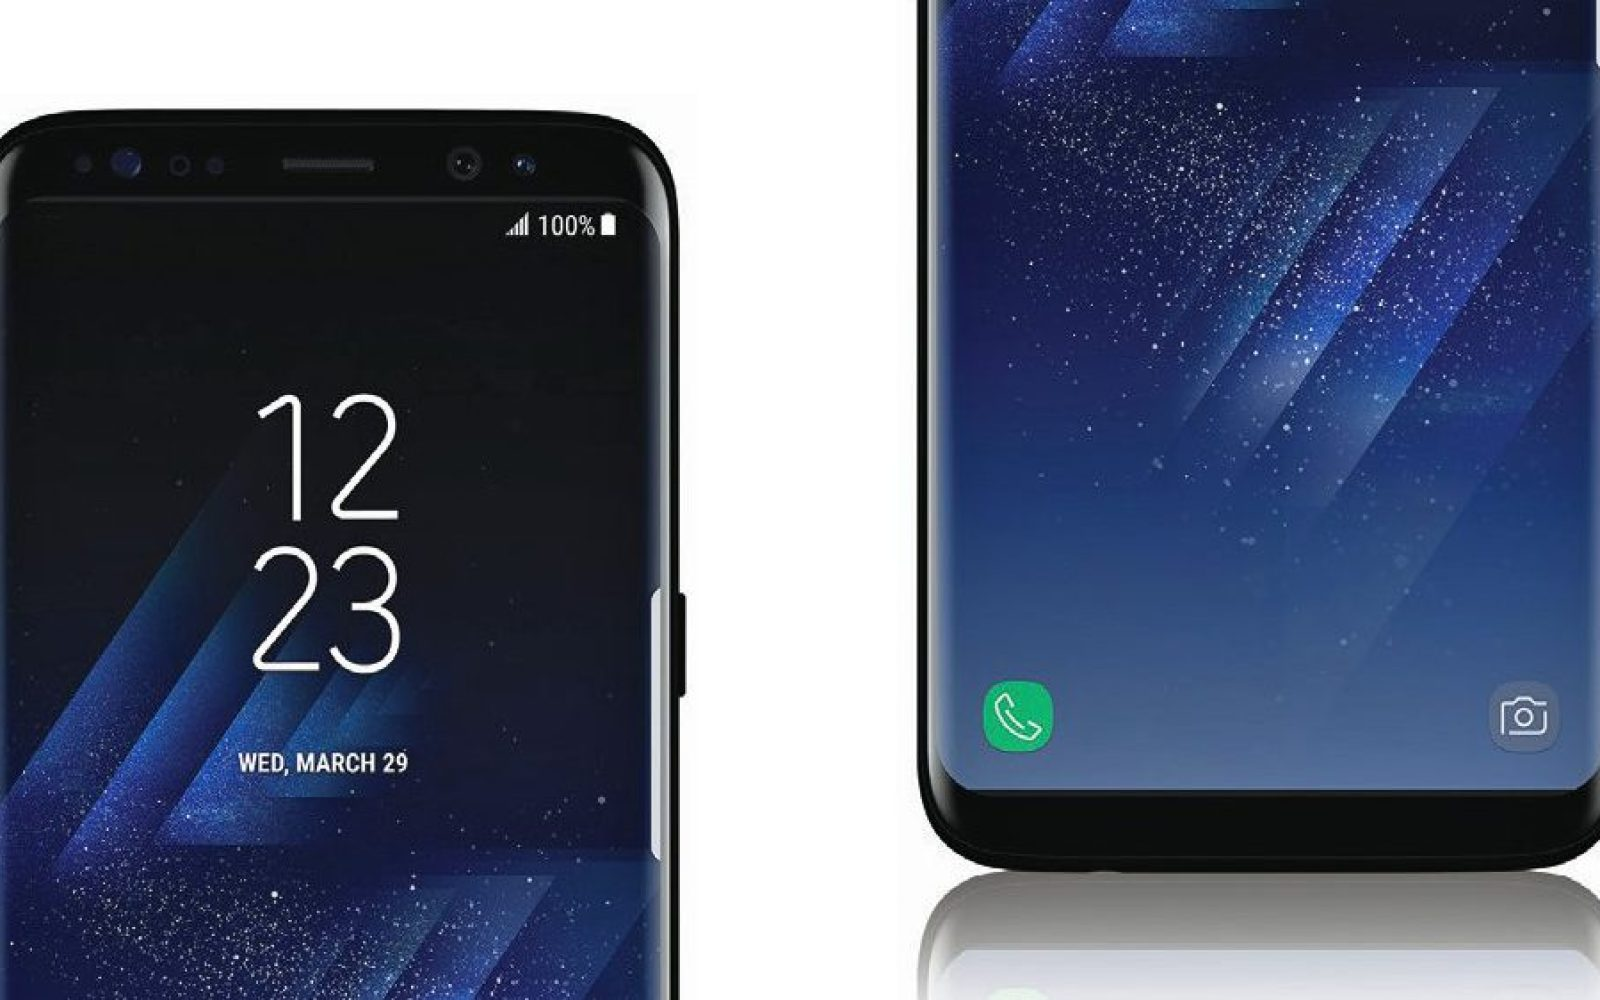 KGI: Samsung's Galaxy S8 lacks 'attractive selling points,' iPhone 8 will cause drop in sales